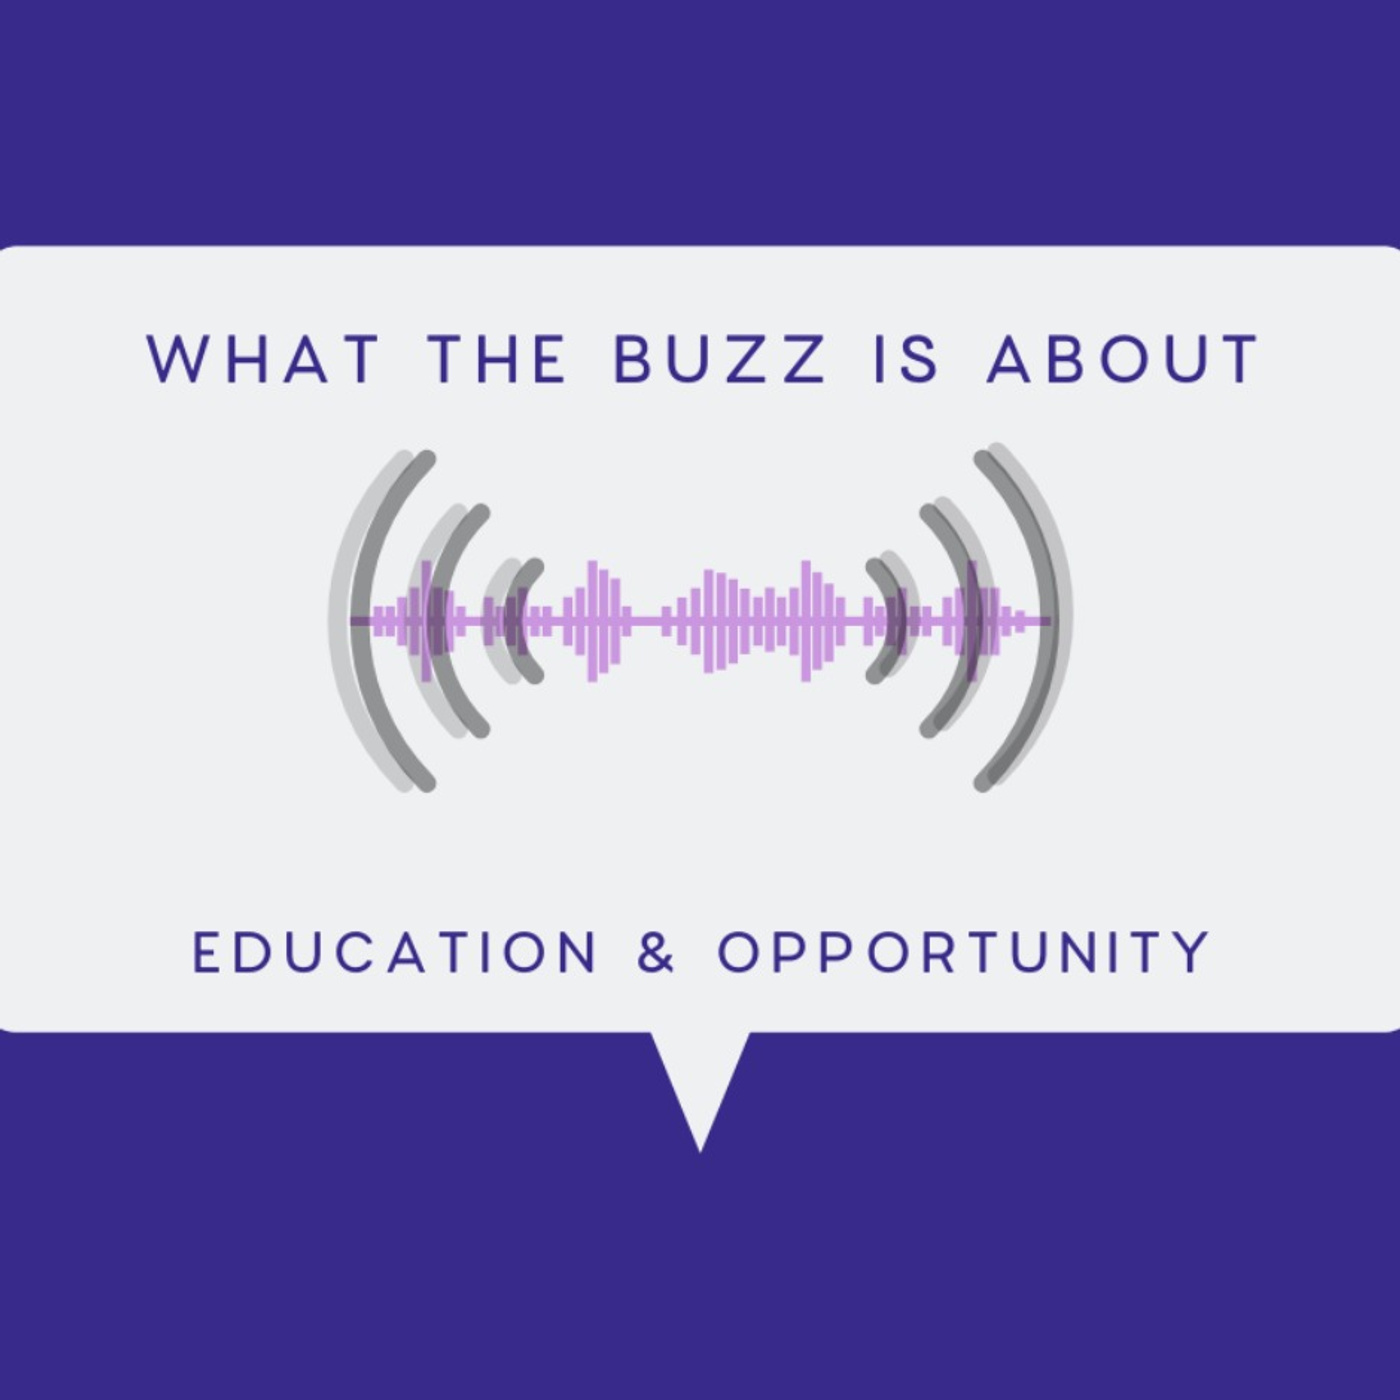 Education & Opportunity